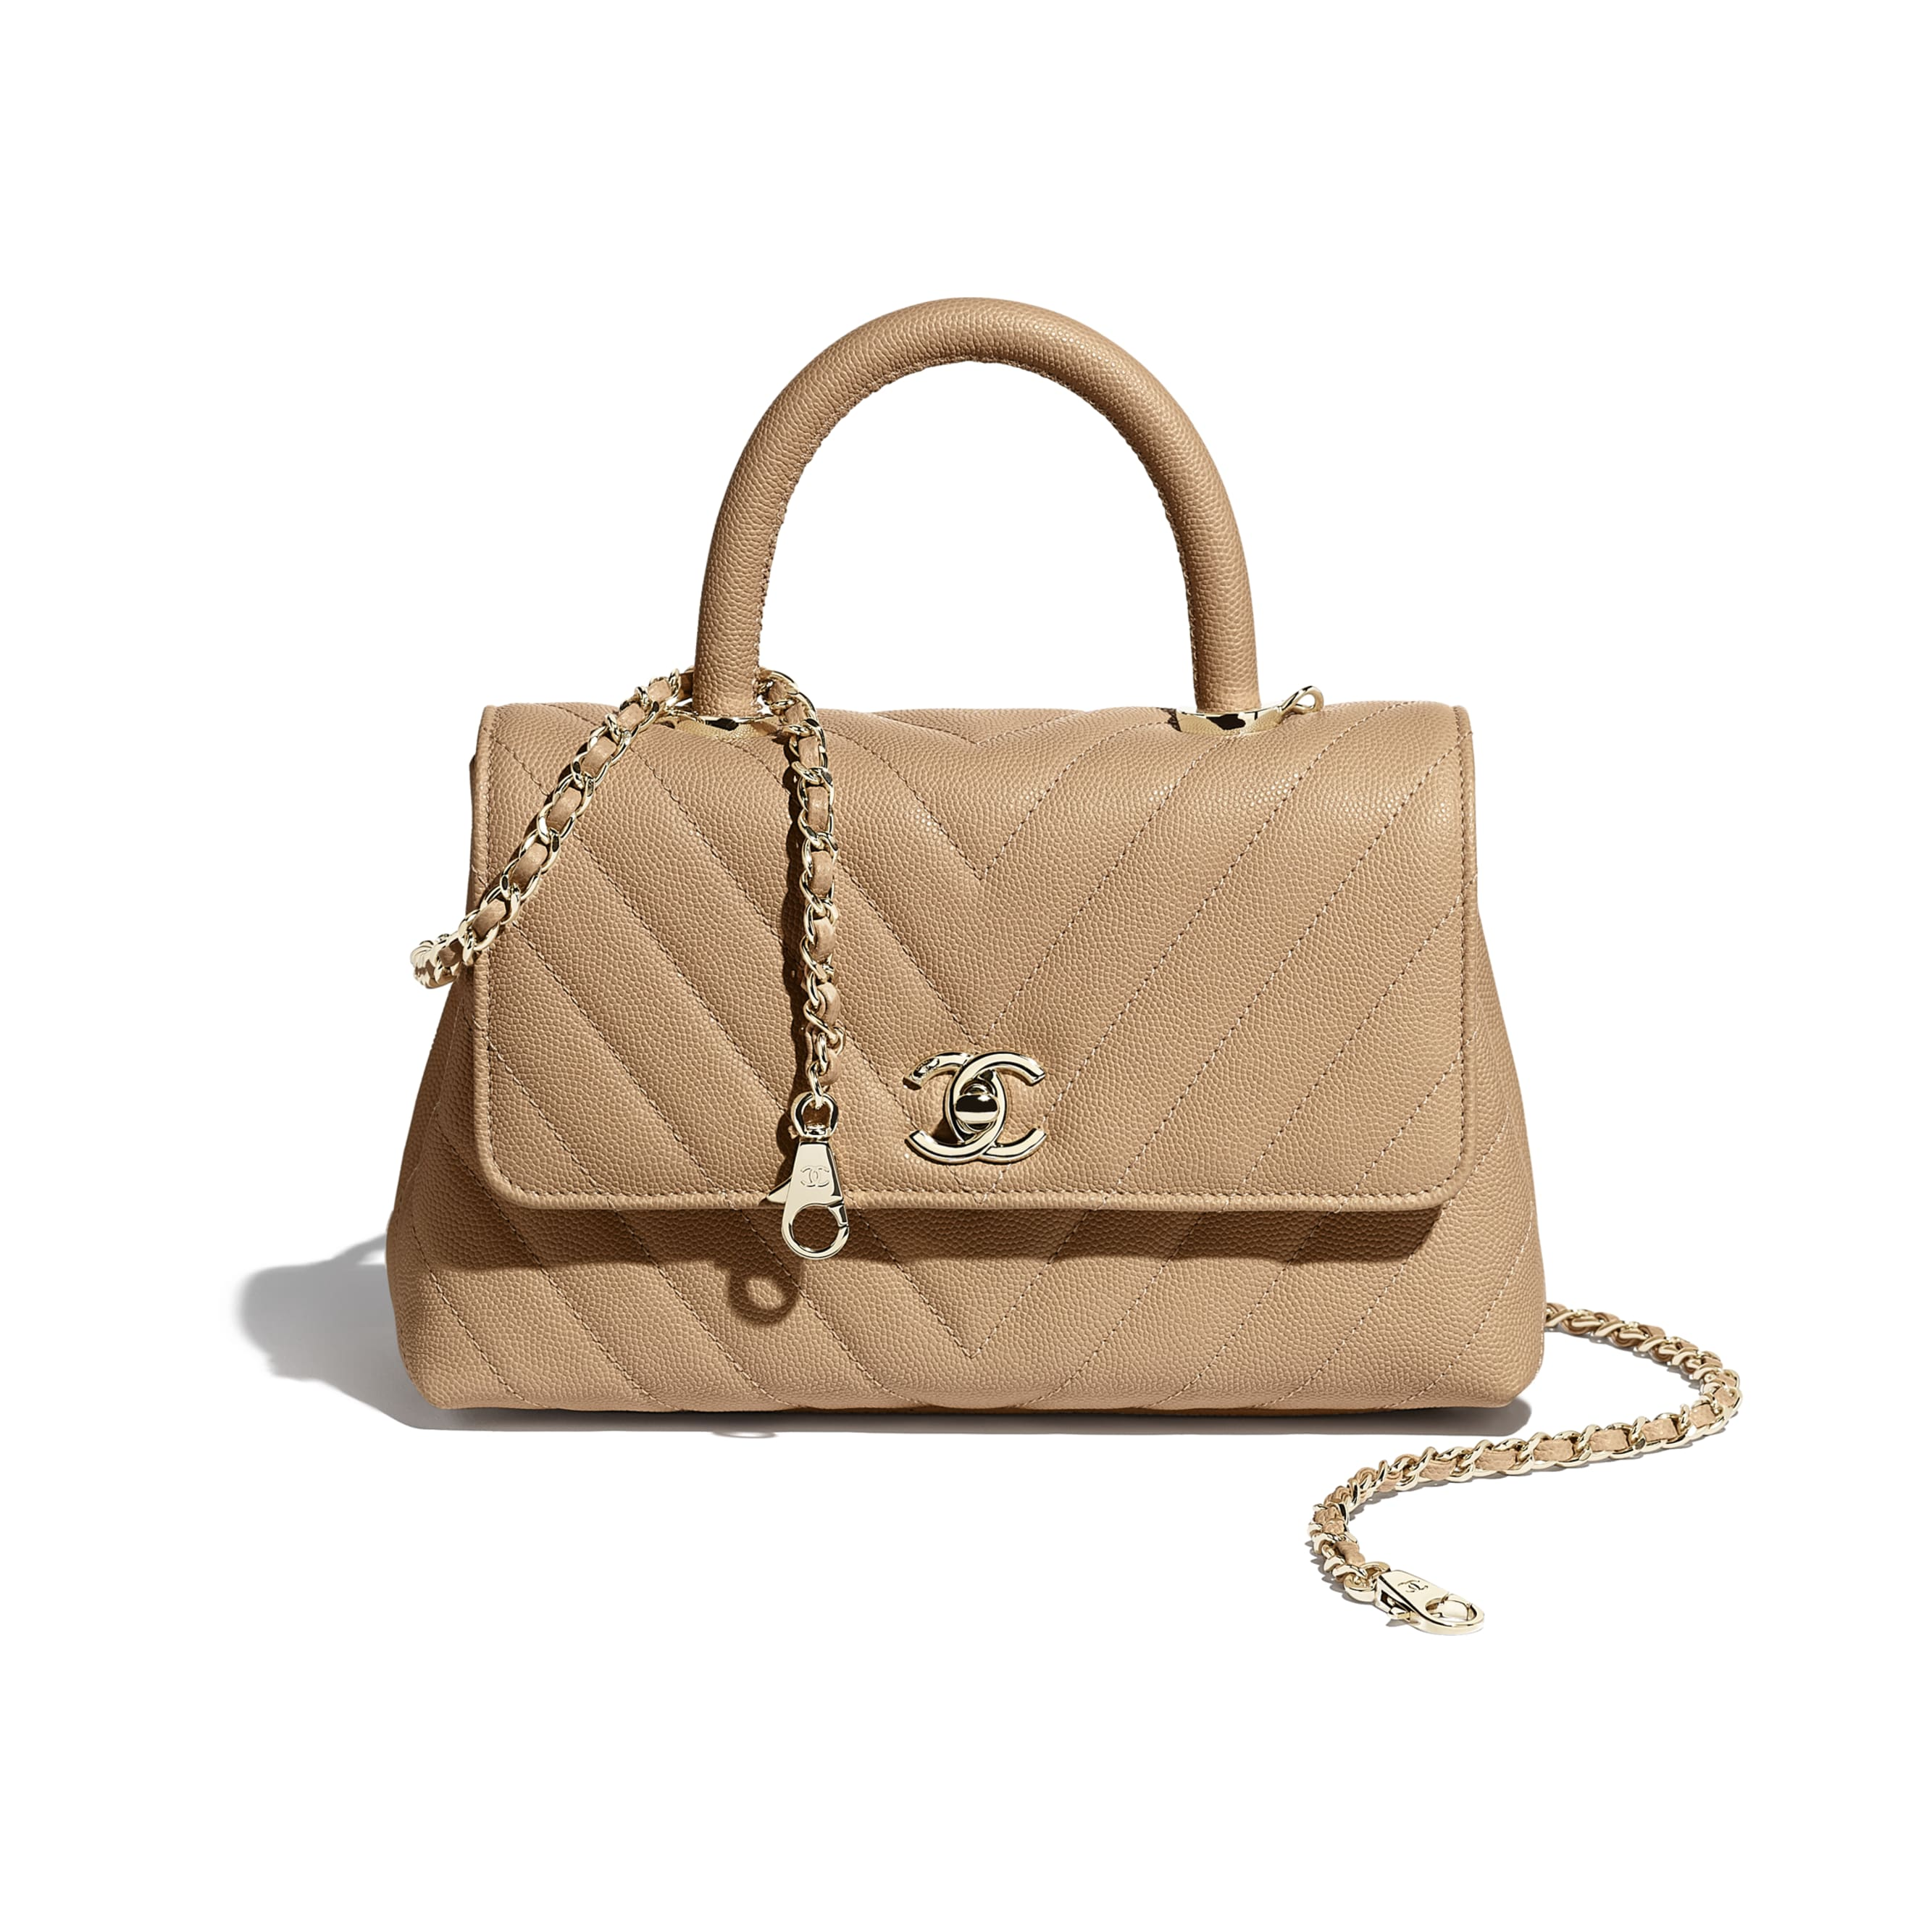 Small Flap Bag with Top Handle - Beige - Grained Calfskin & Gold-Tone Metal - CHANEL - Extra view - see standard sized version